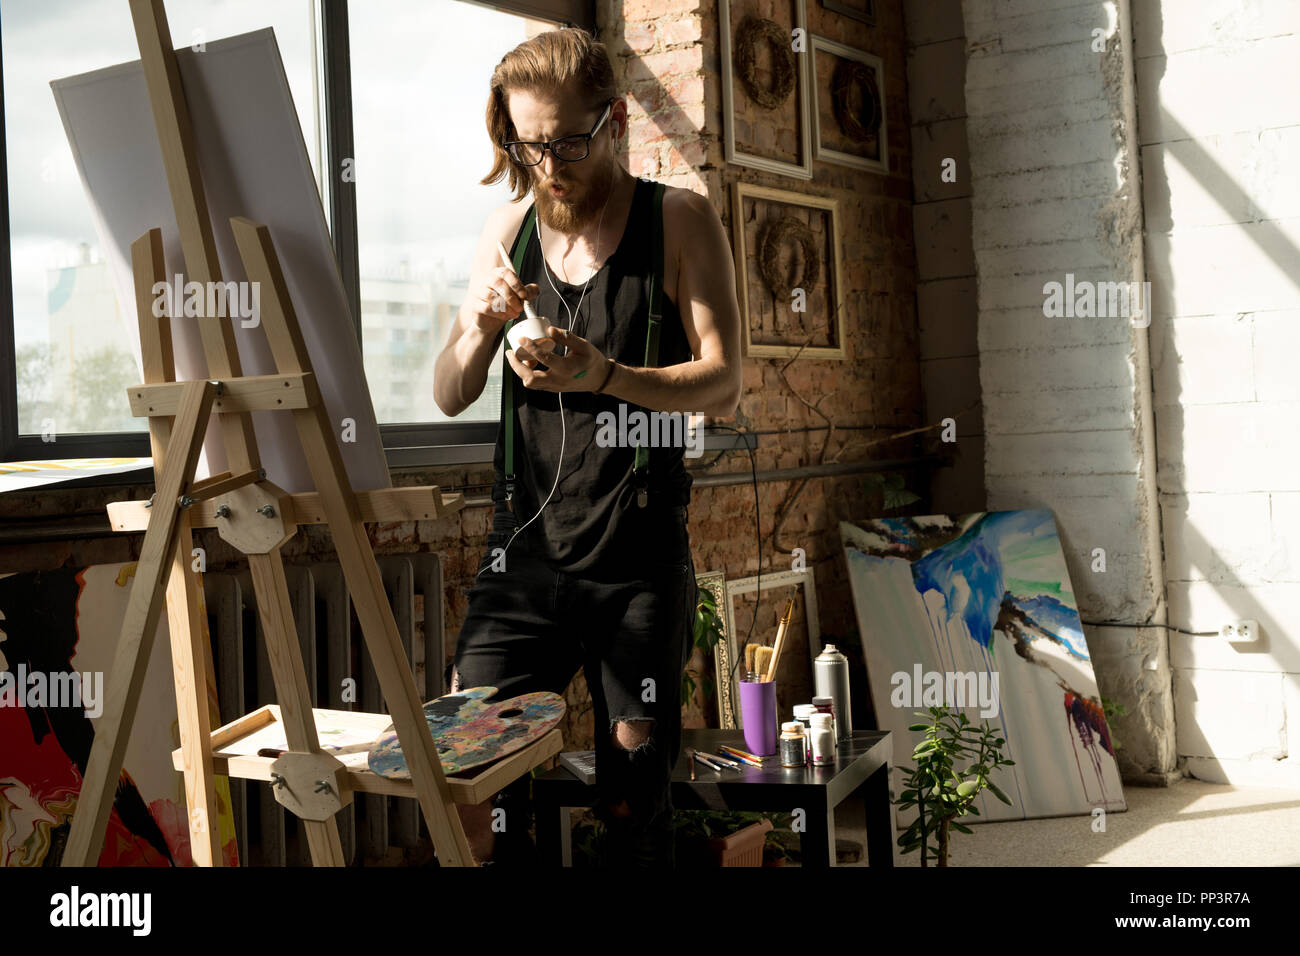 Modern Artist in Workshop - Stock Image